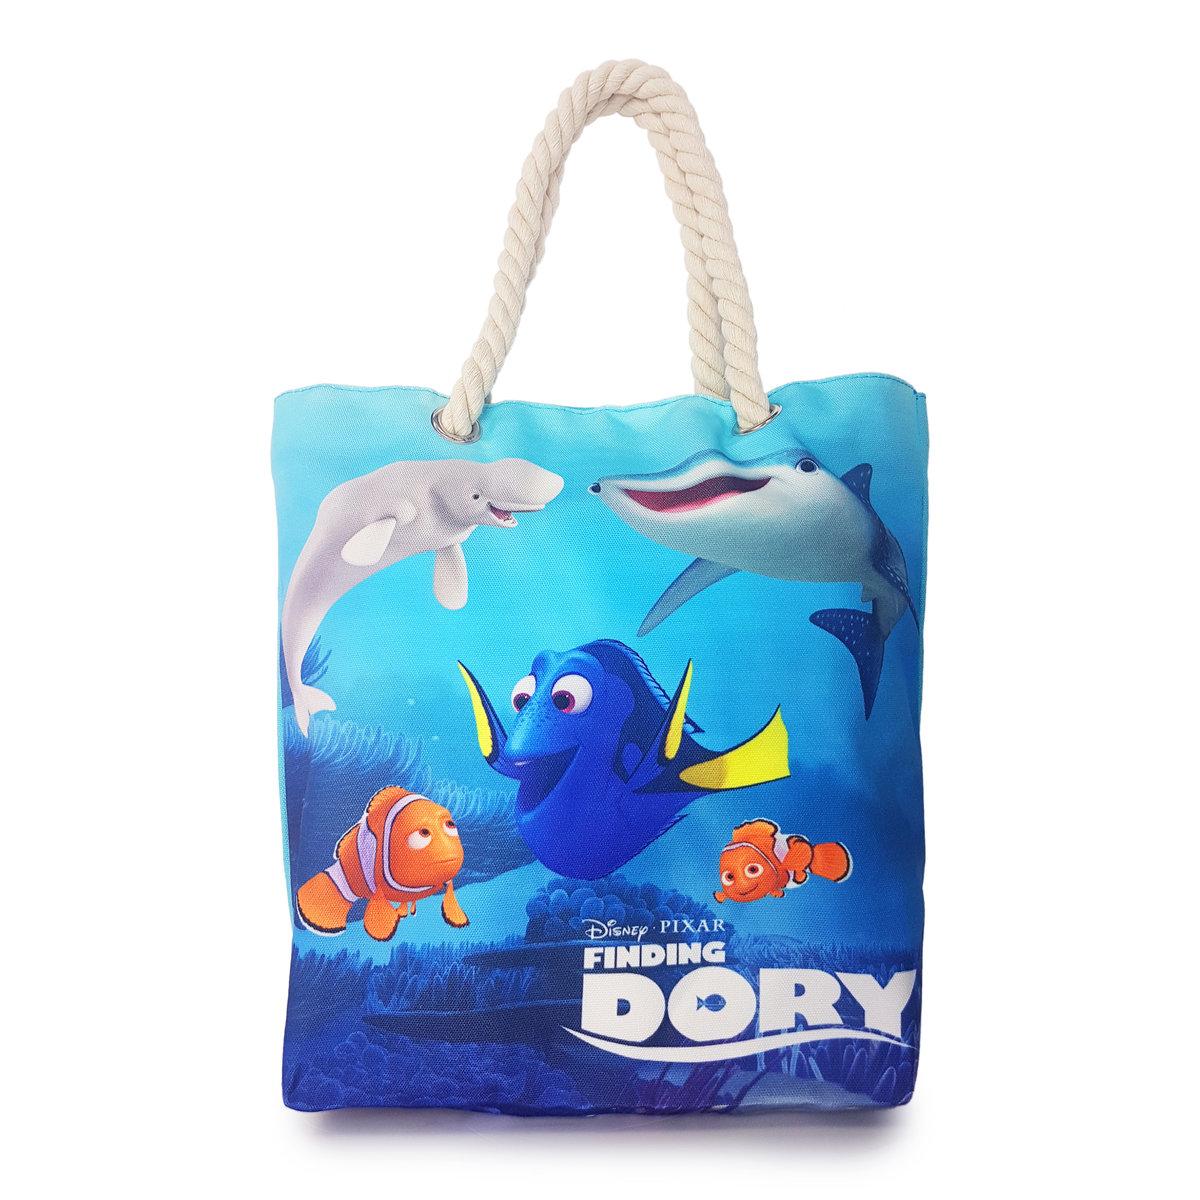 DISNEY - FINDING DORY TOTE BAG (38X33CM) (Licensed by Disney)